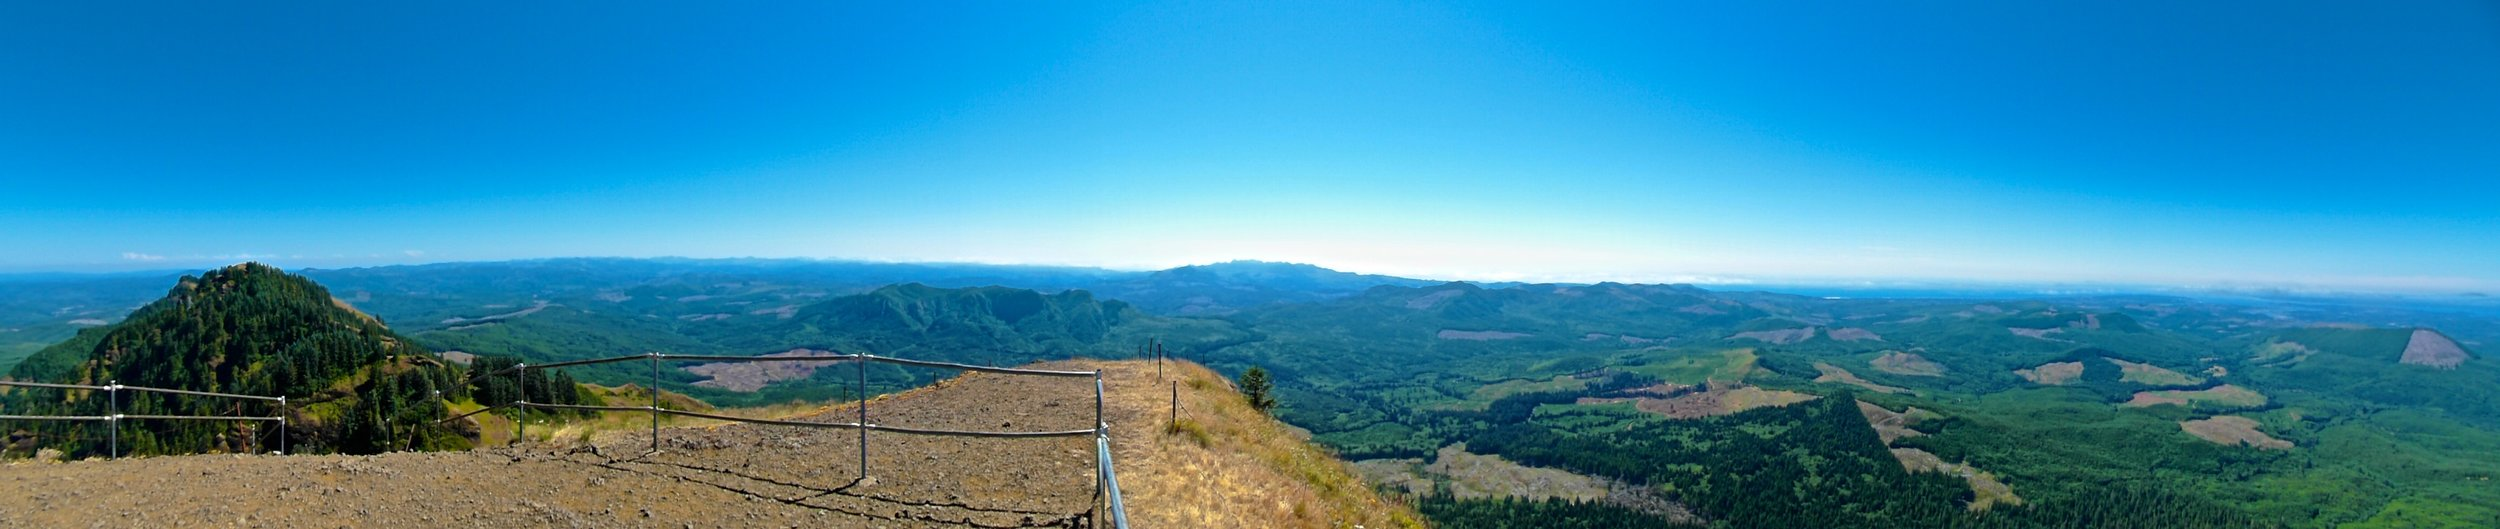 Oregon's coastline from the Saddle mountain